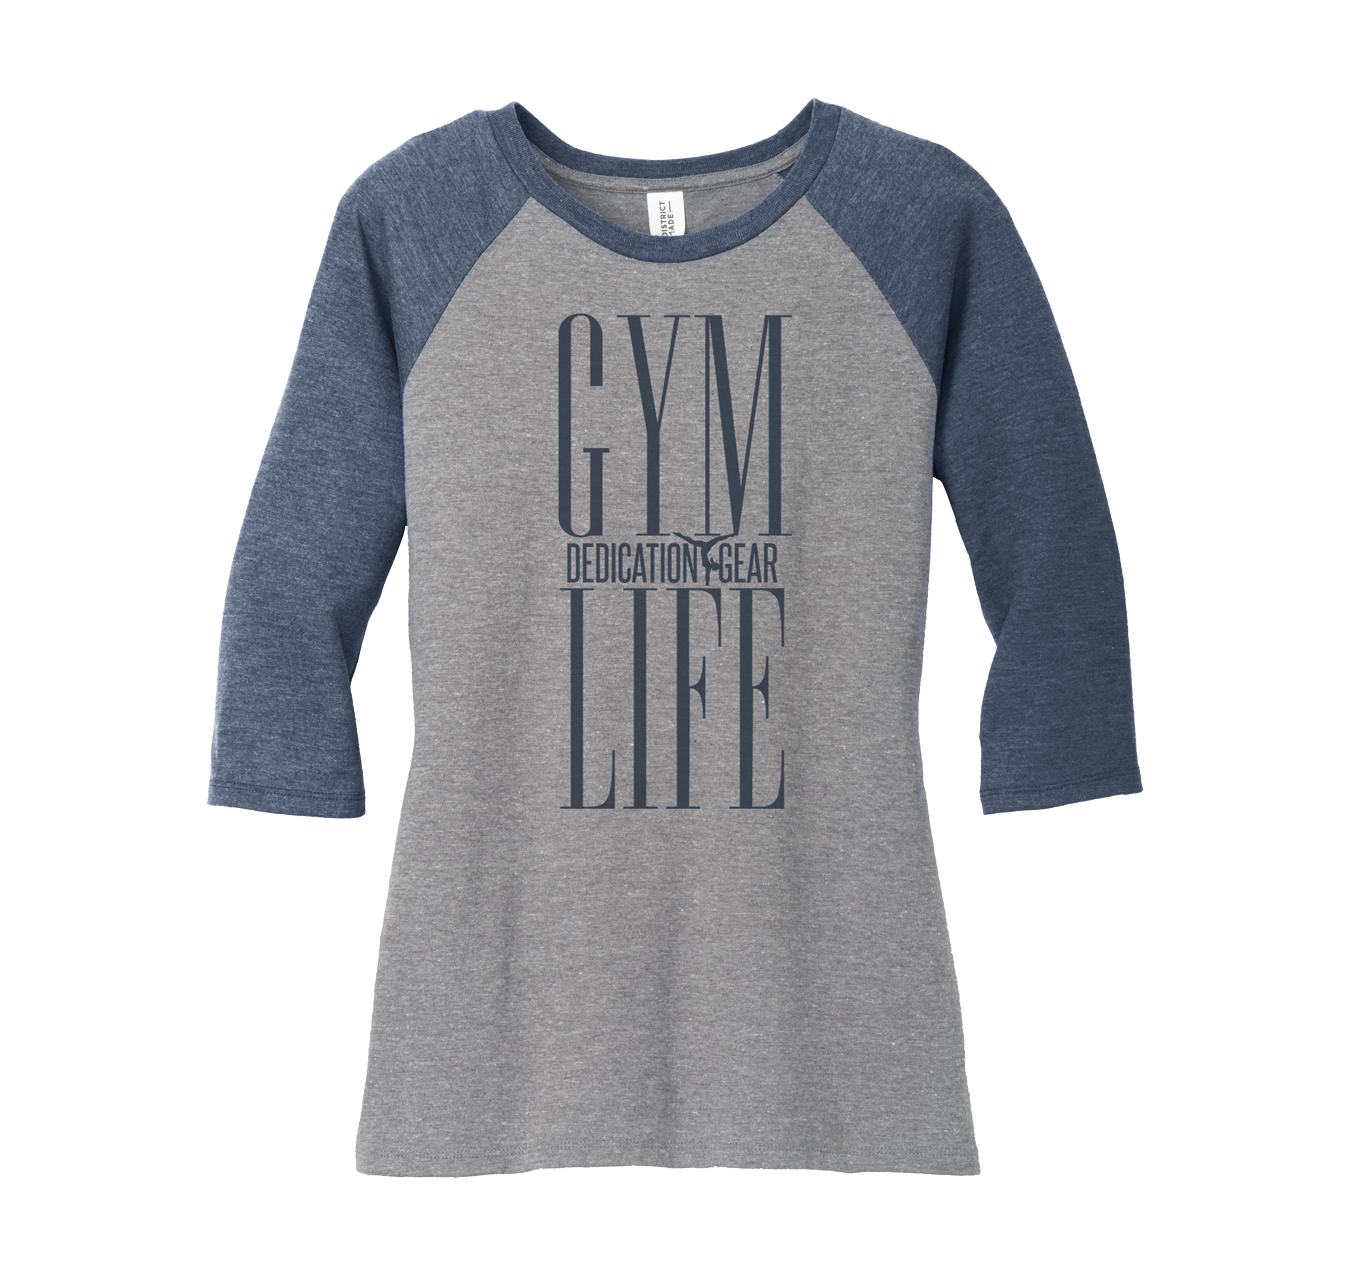 Ladies Raglan Top with Grey Body and Navy Sleeves